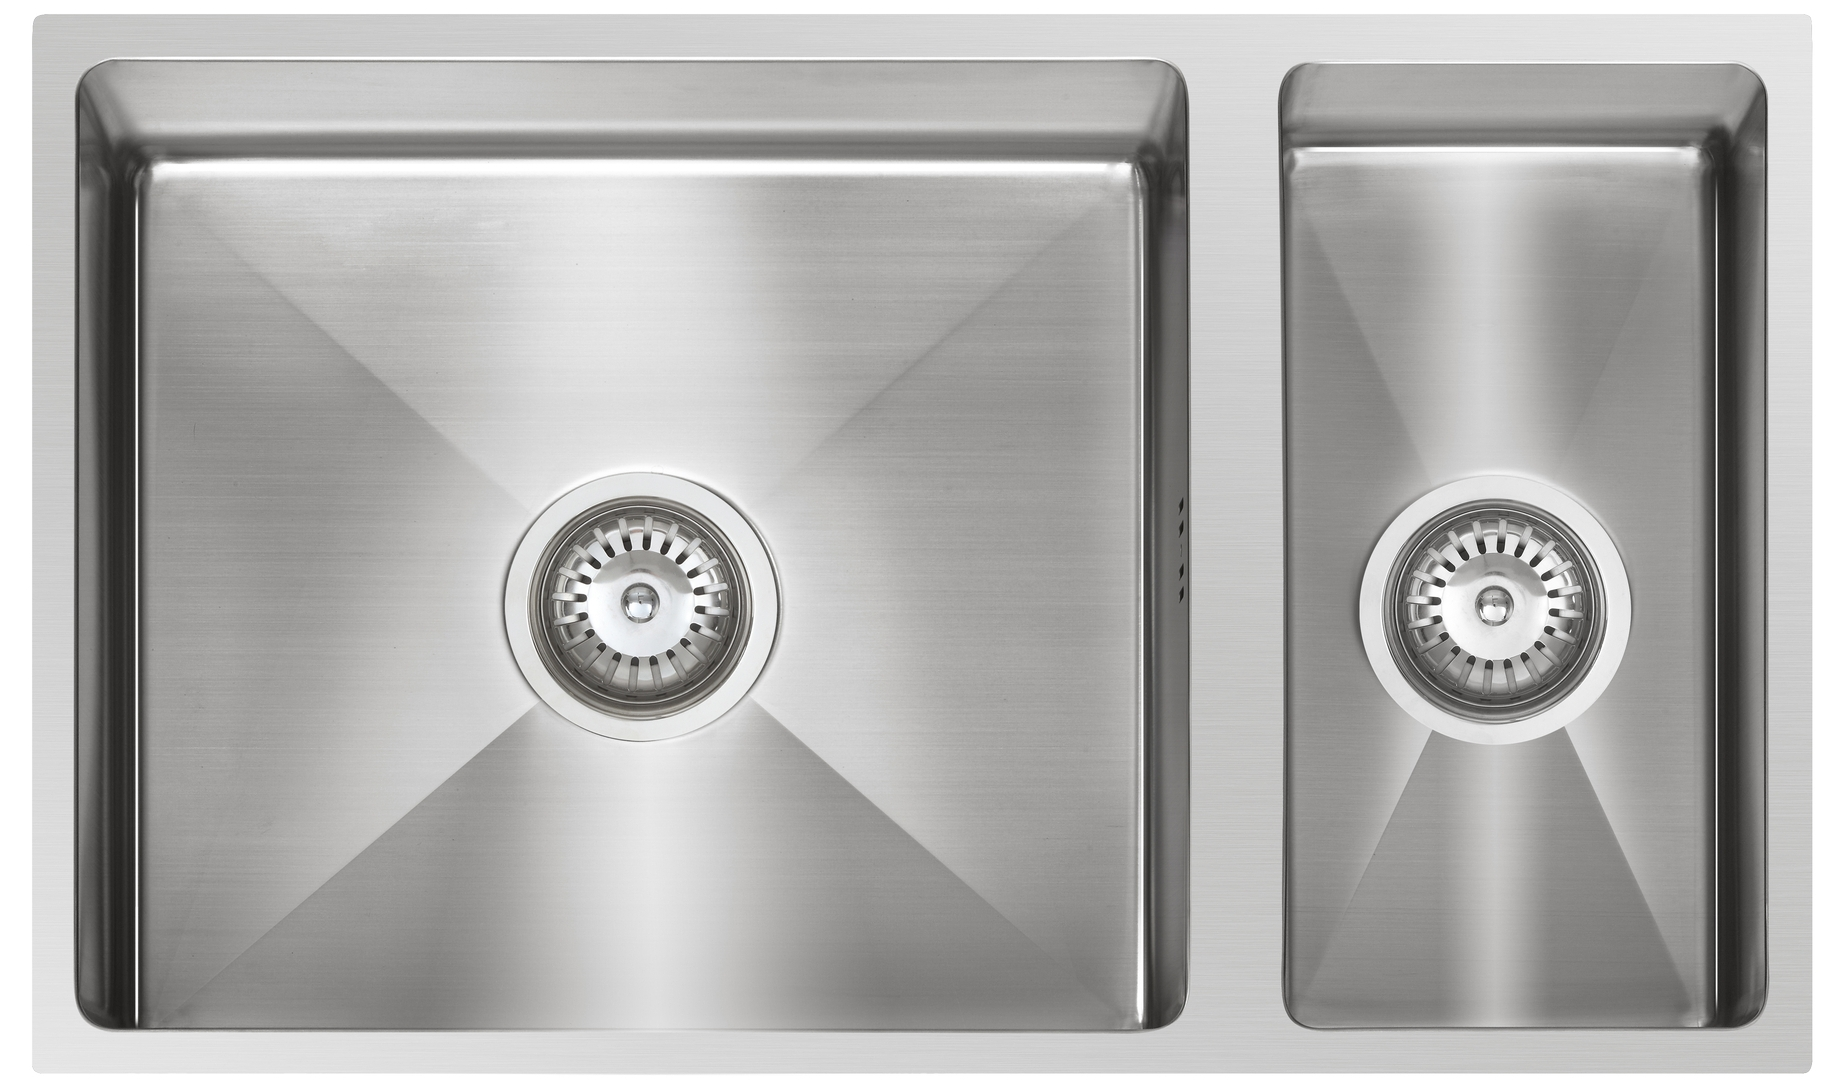 CLASSINK 450.200 stainless steel kitchen sink